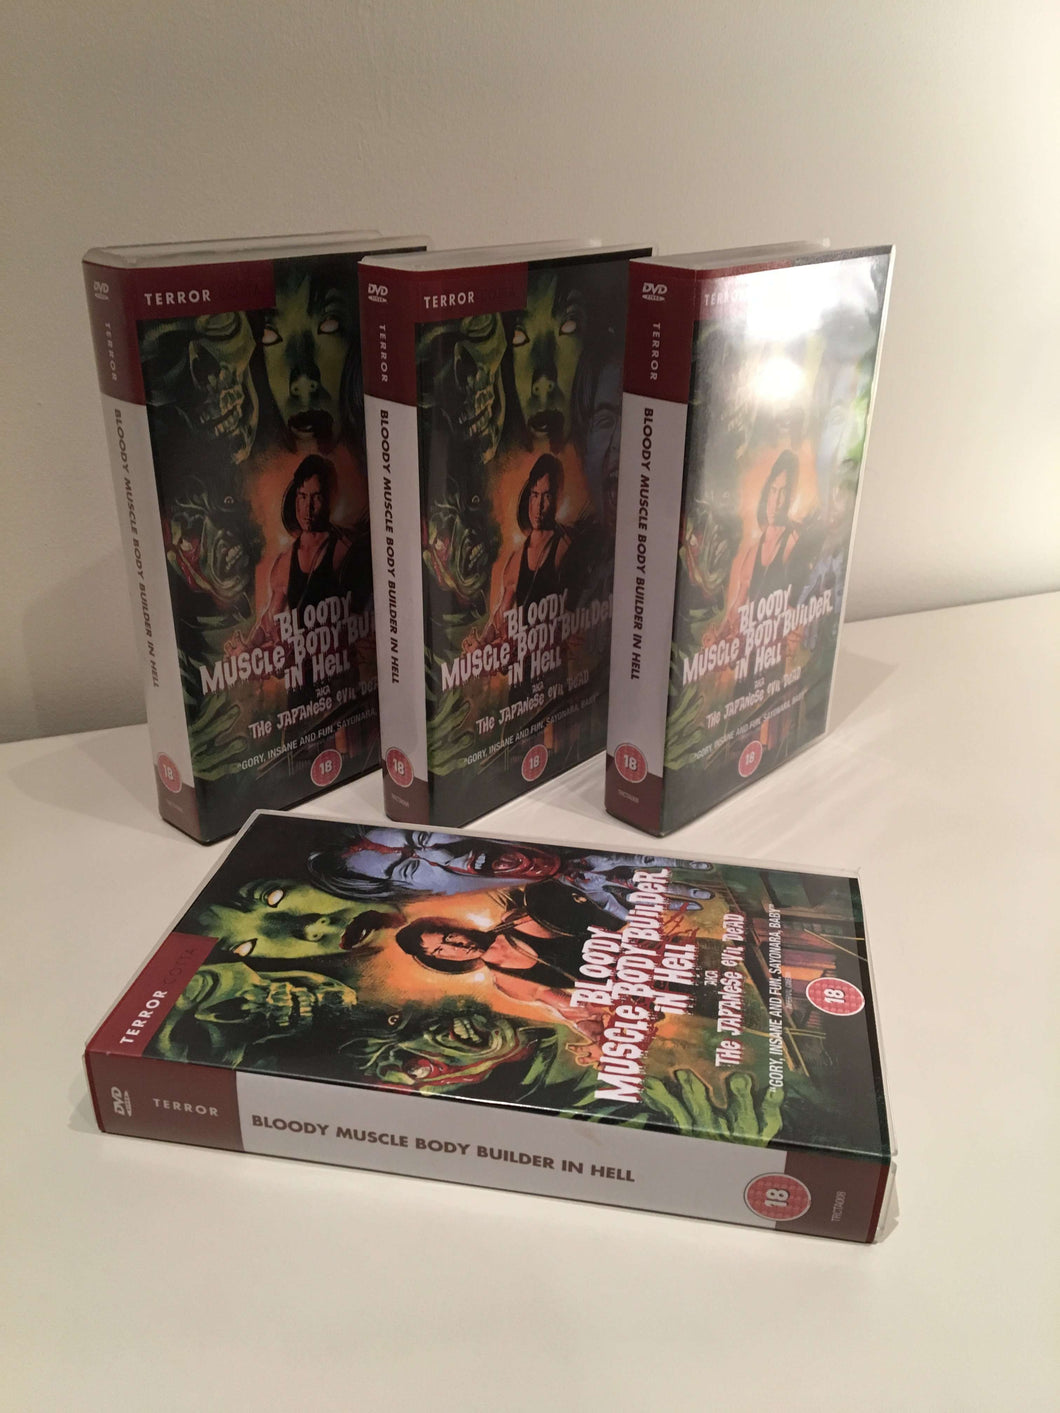 Bloody Muscle Body Builder in Hell VHS tape